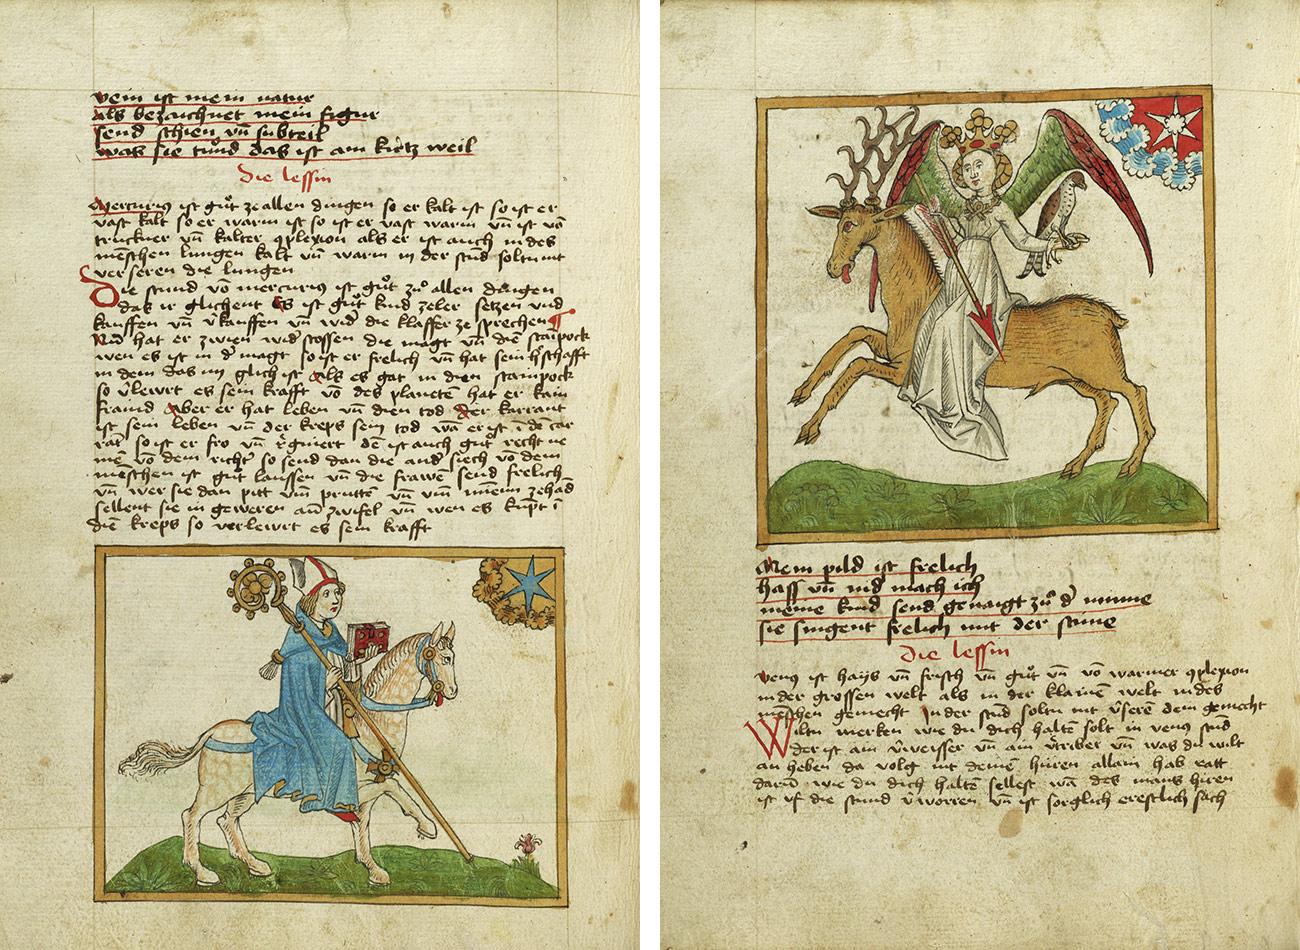 A two-page spread from a manuscript shows, on the left, a man wearing a blue robe and miter, and holding a red book in his left hand and a golden staff in his right, on a white horse facing a blue star; on the right, a woman with red and green wings and a golden crown rides a brown stag while holding a red arrow in her right hand and a large bird perches on her left forearm. Over her left shoulder is a white star against a red background.